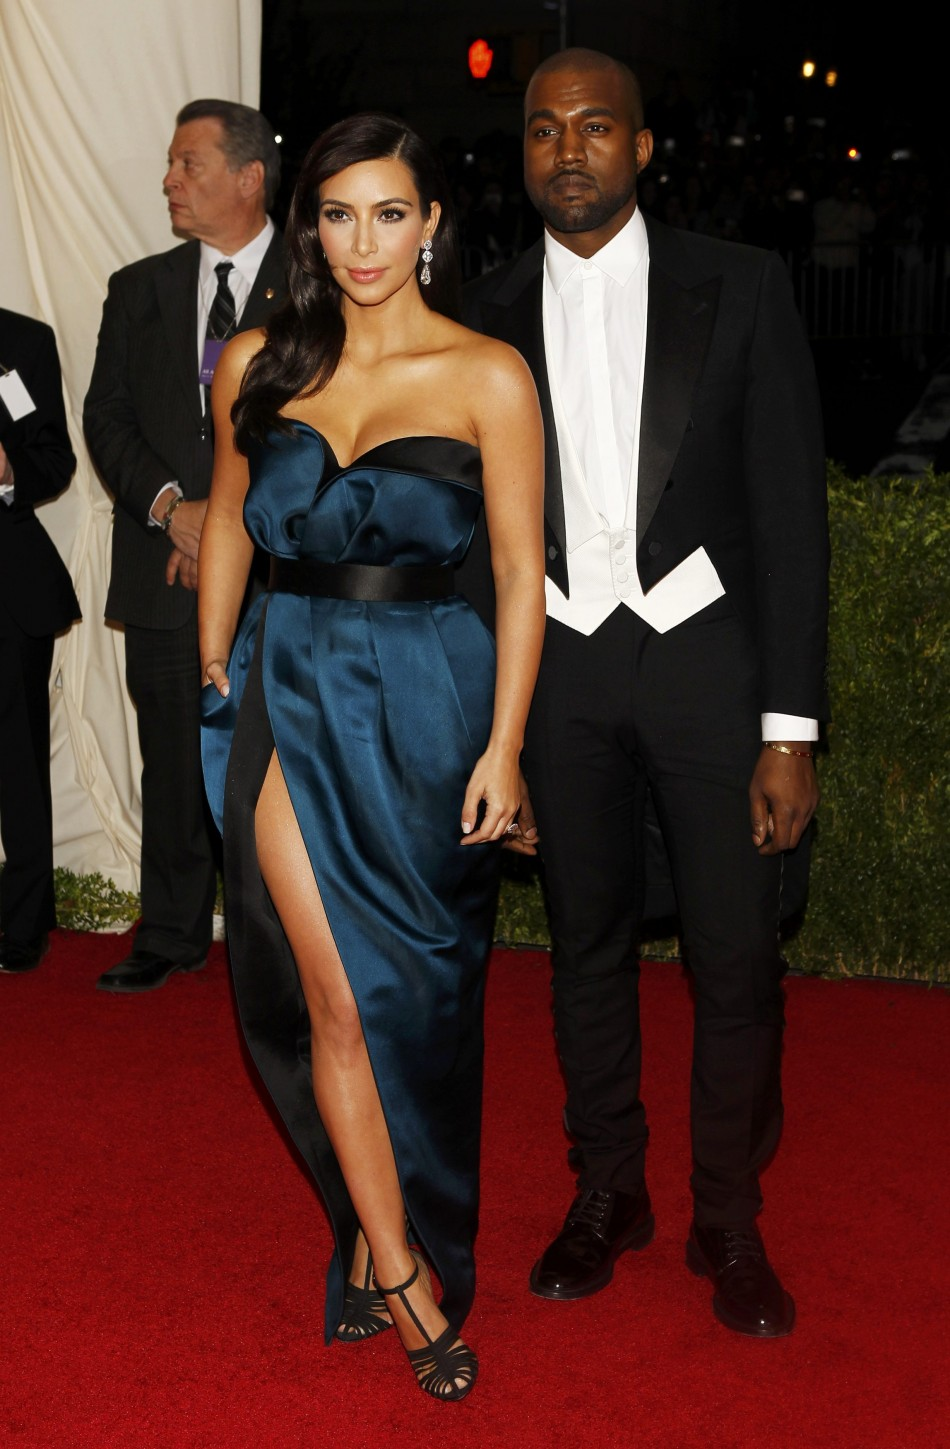 446897-kim-kardashian-and-kanye-west-arrive-at-the-metropolitan-museum-of-art